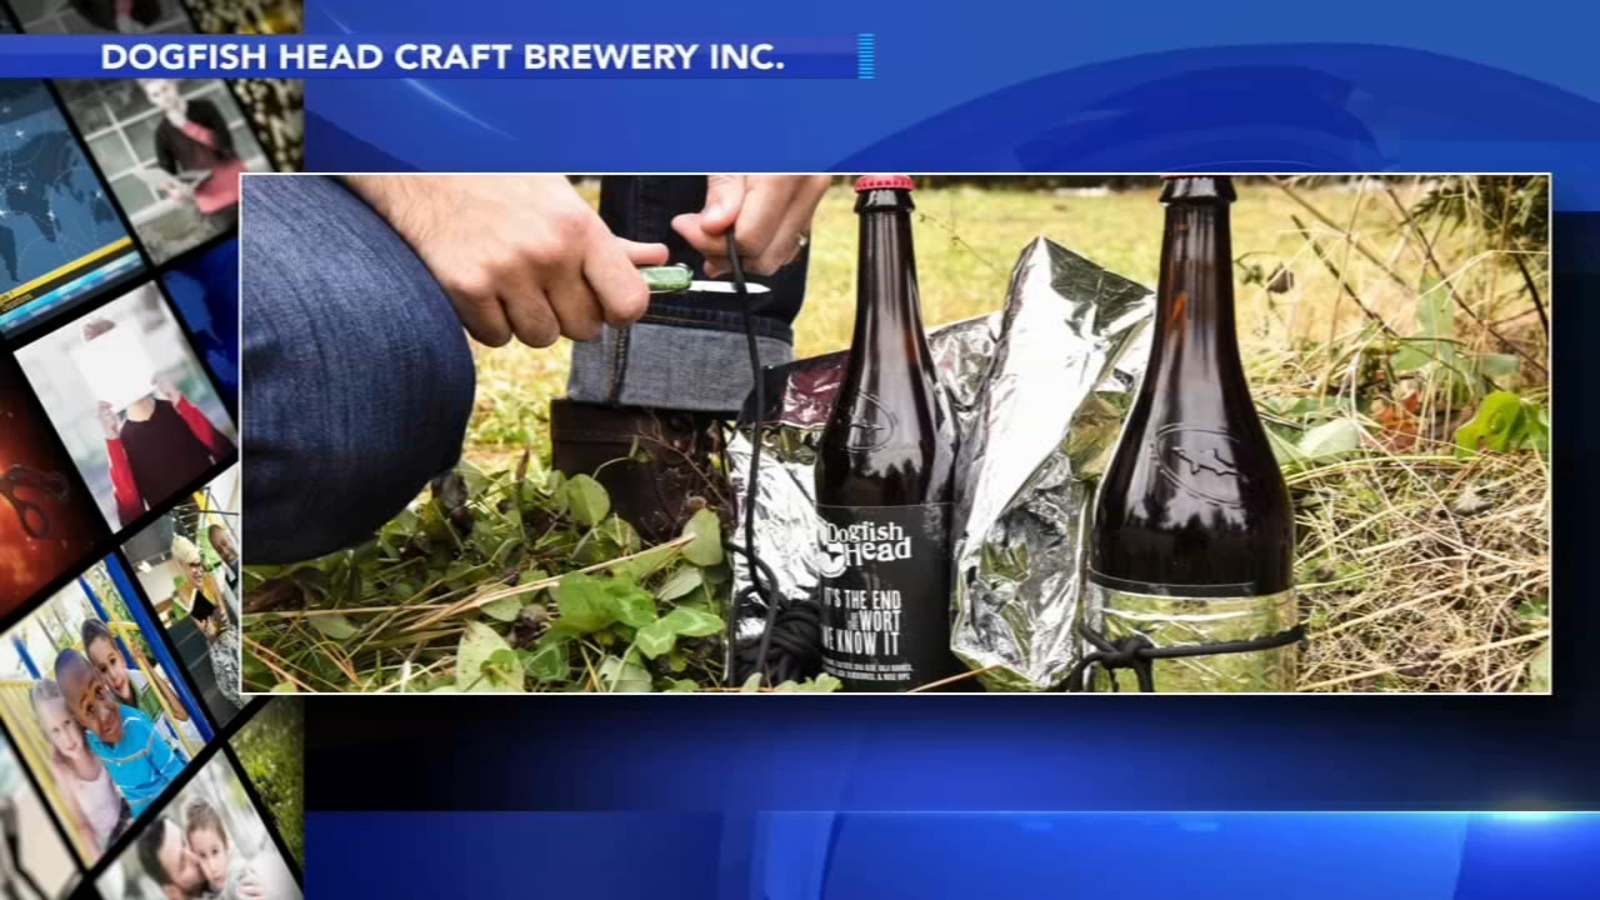 45 Bottle Of Dogfish Head Survival Beer Comes With